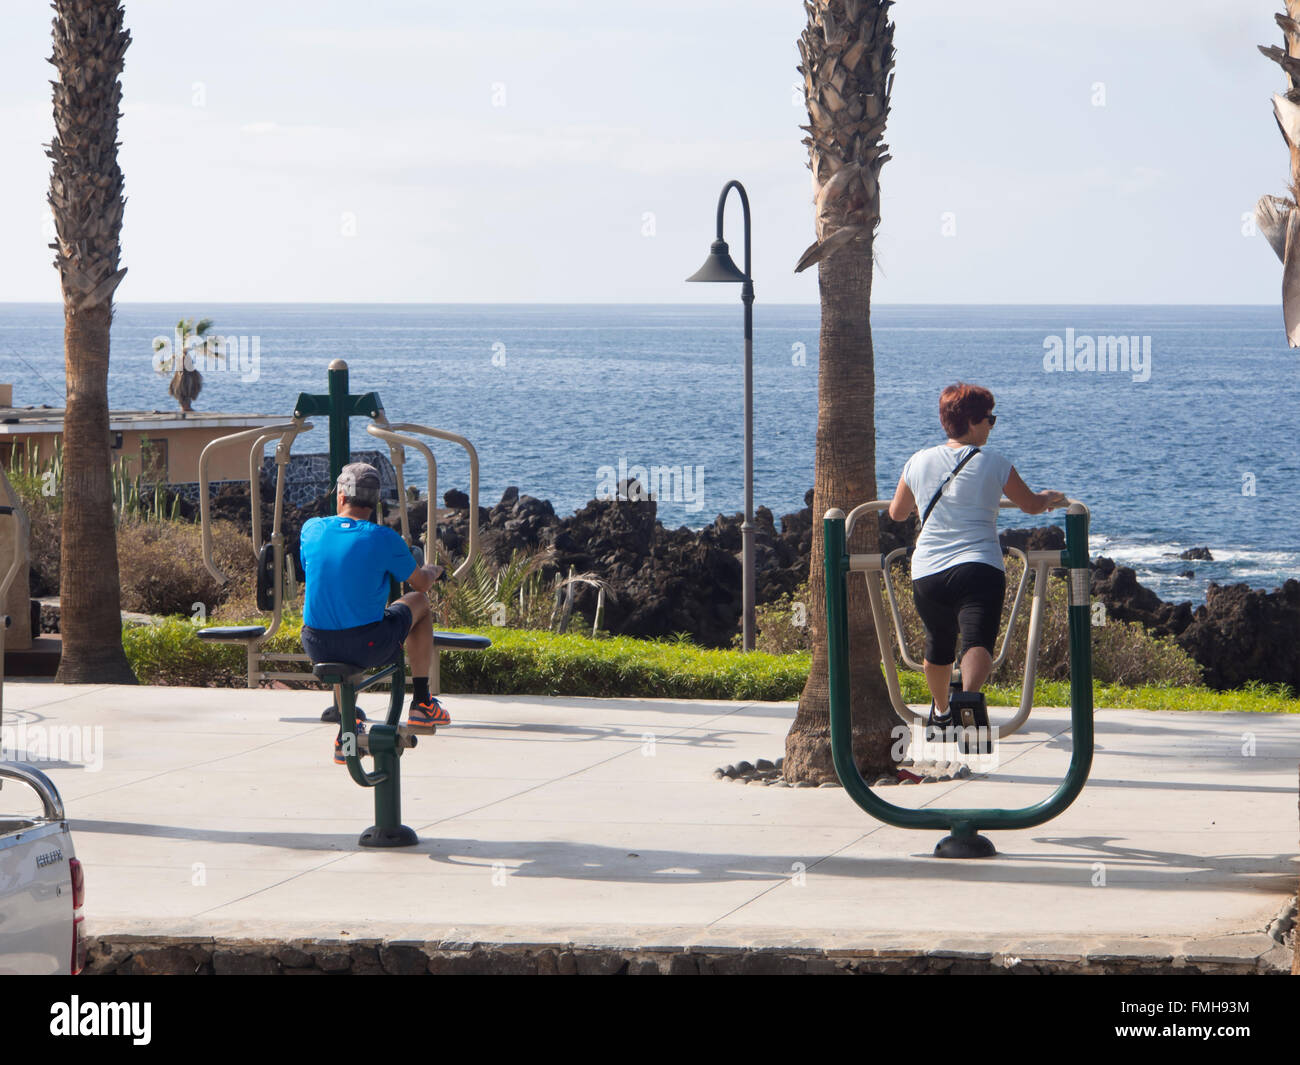 Outdoors exercise apparatus in use on the coastal promenade in Playa San Juan, Tenerife, Canary Islands Spain, active Stock Photo